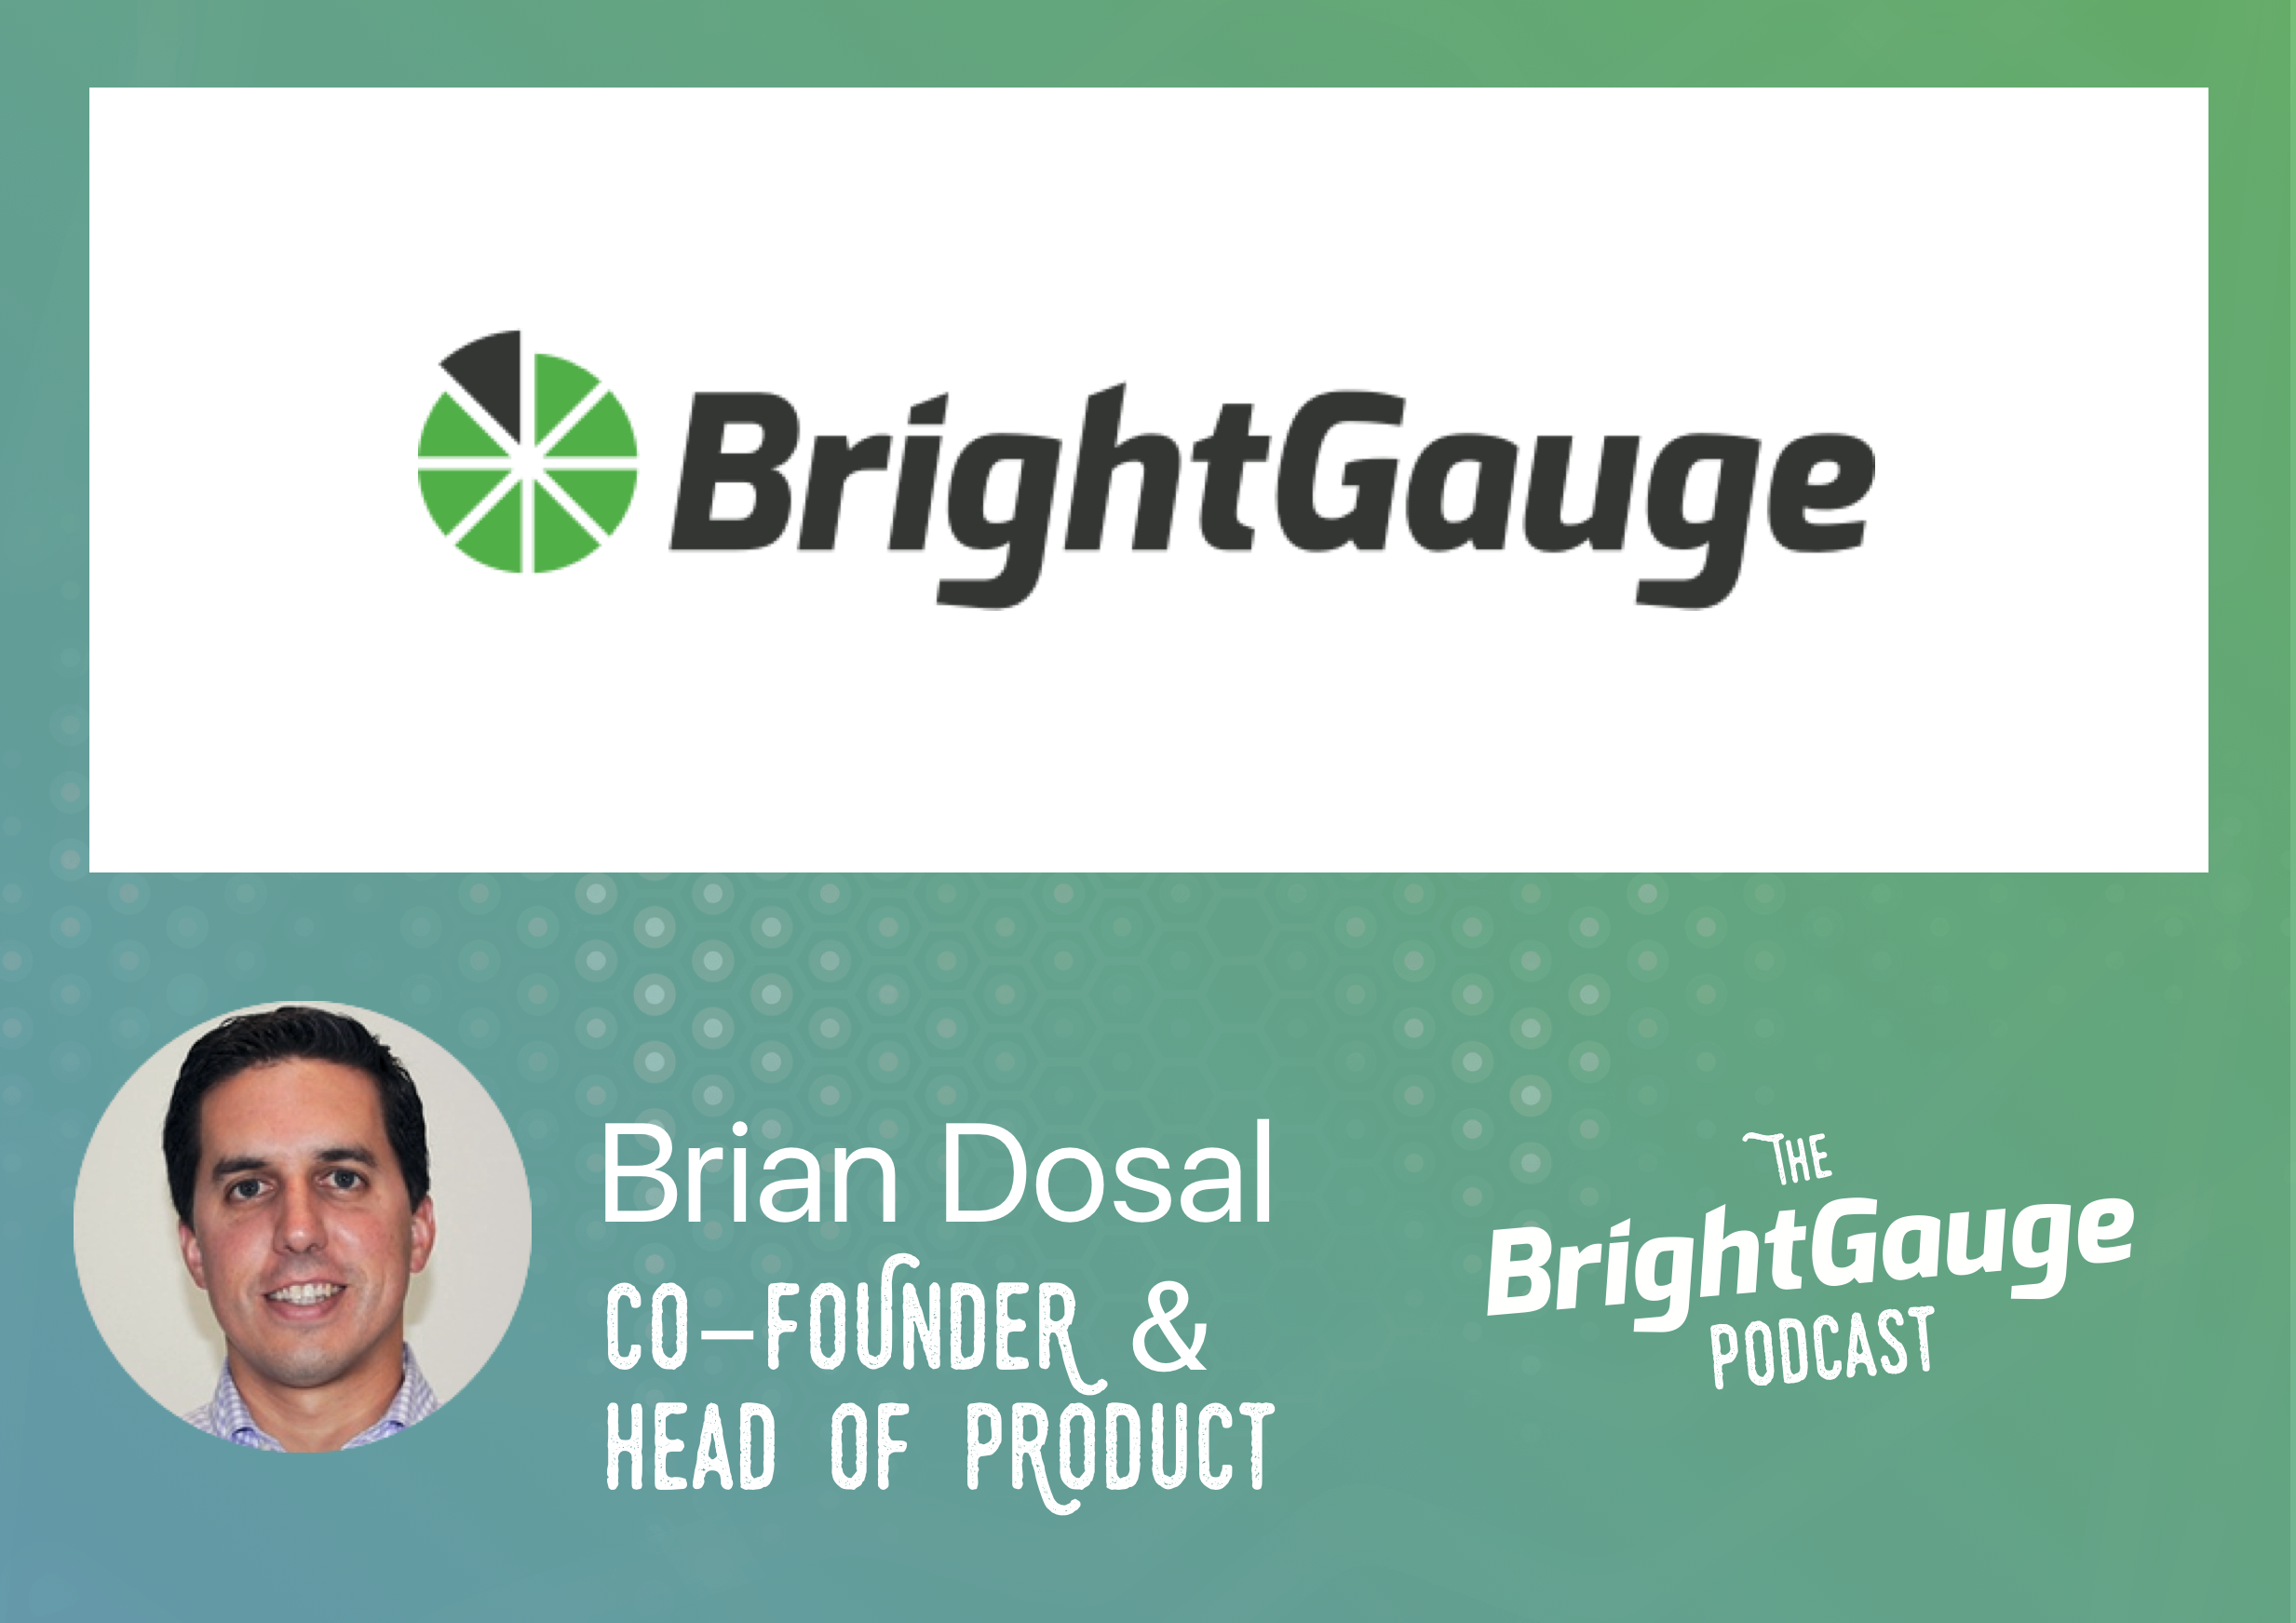 [Podcast] Building BrightGauge, featuring Brian Dosal